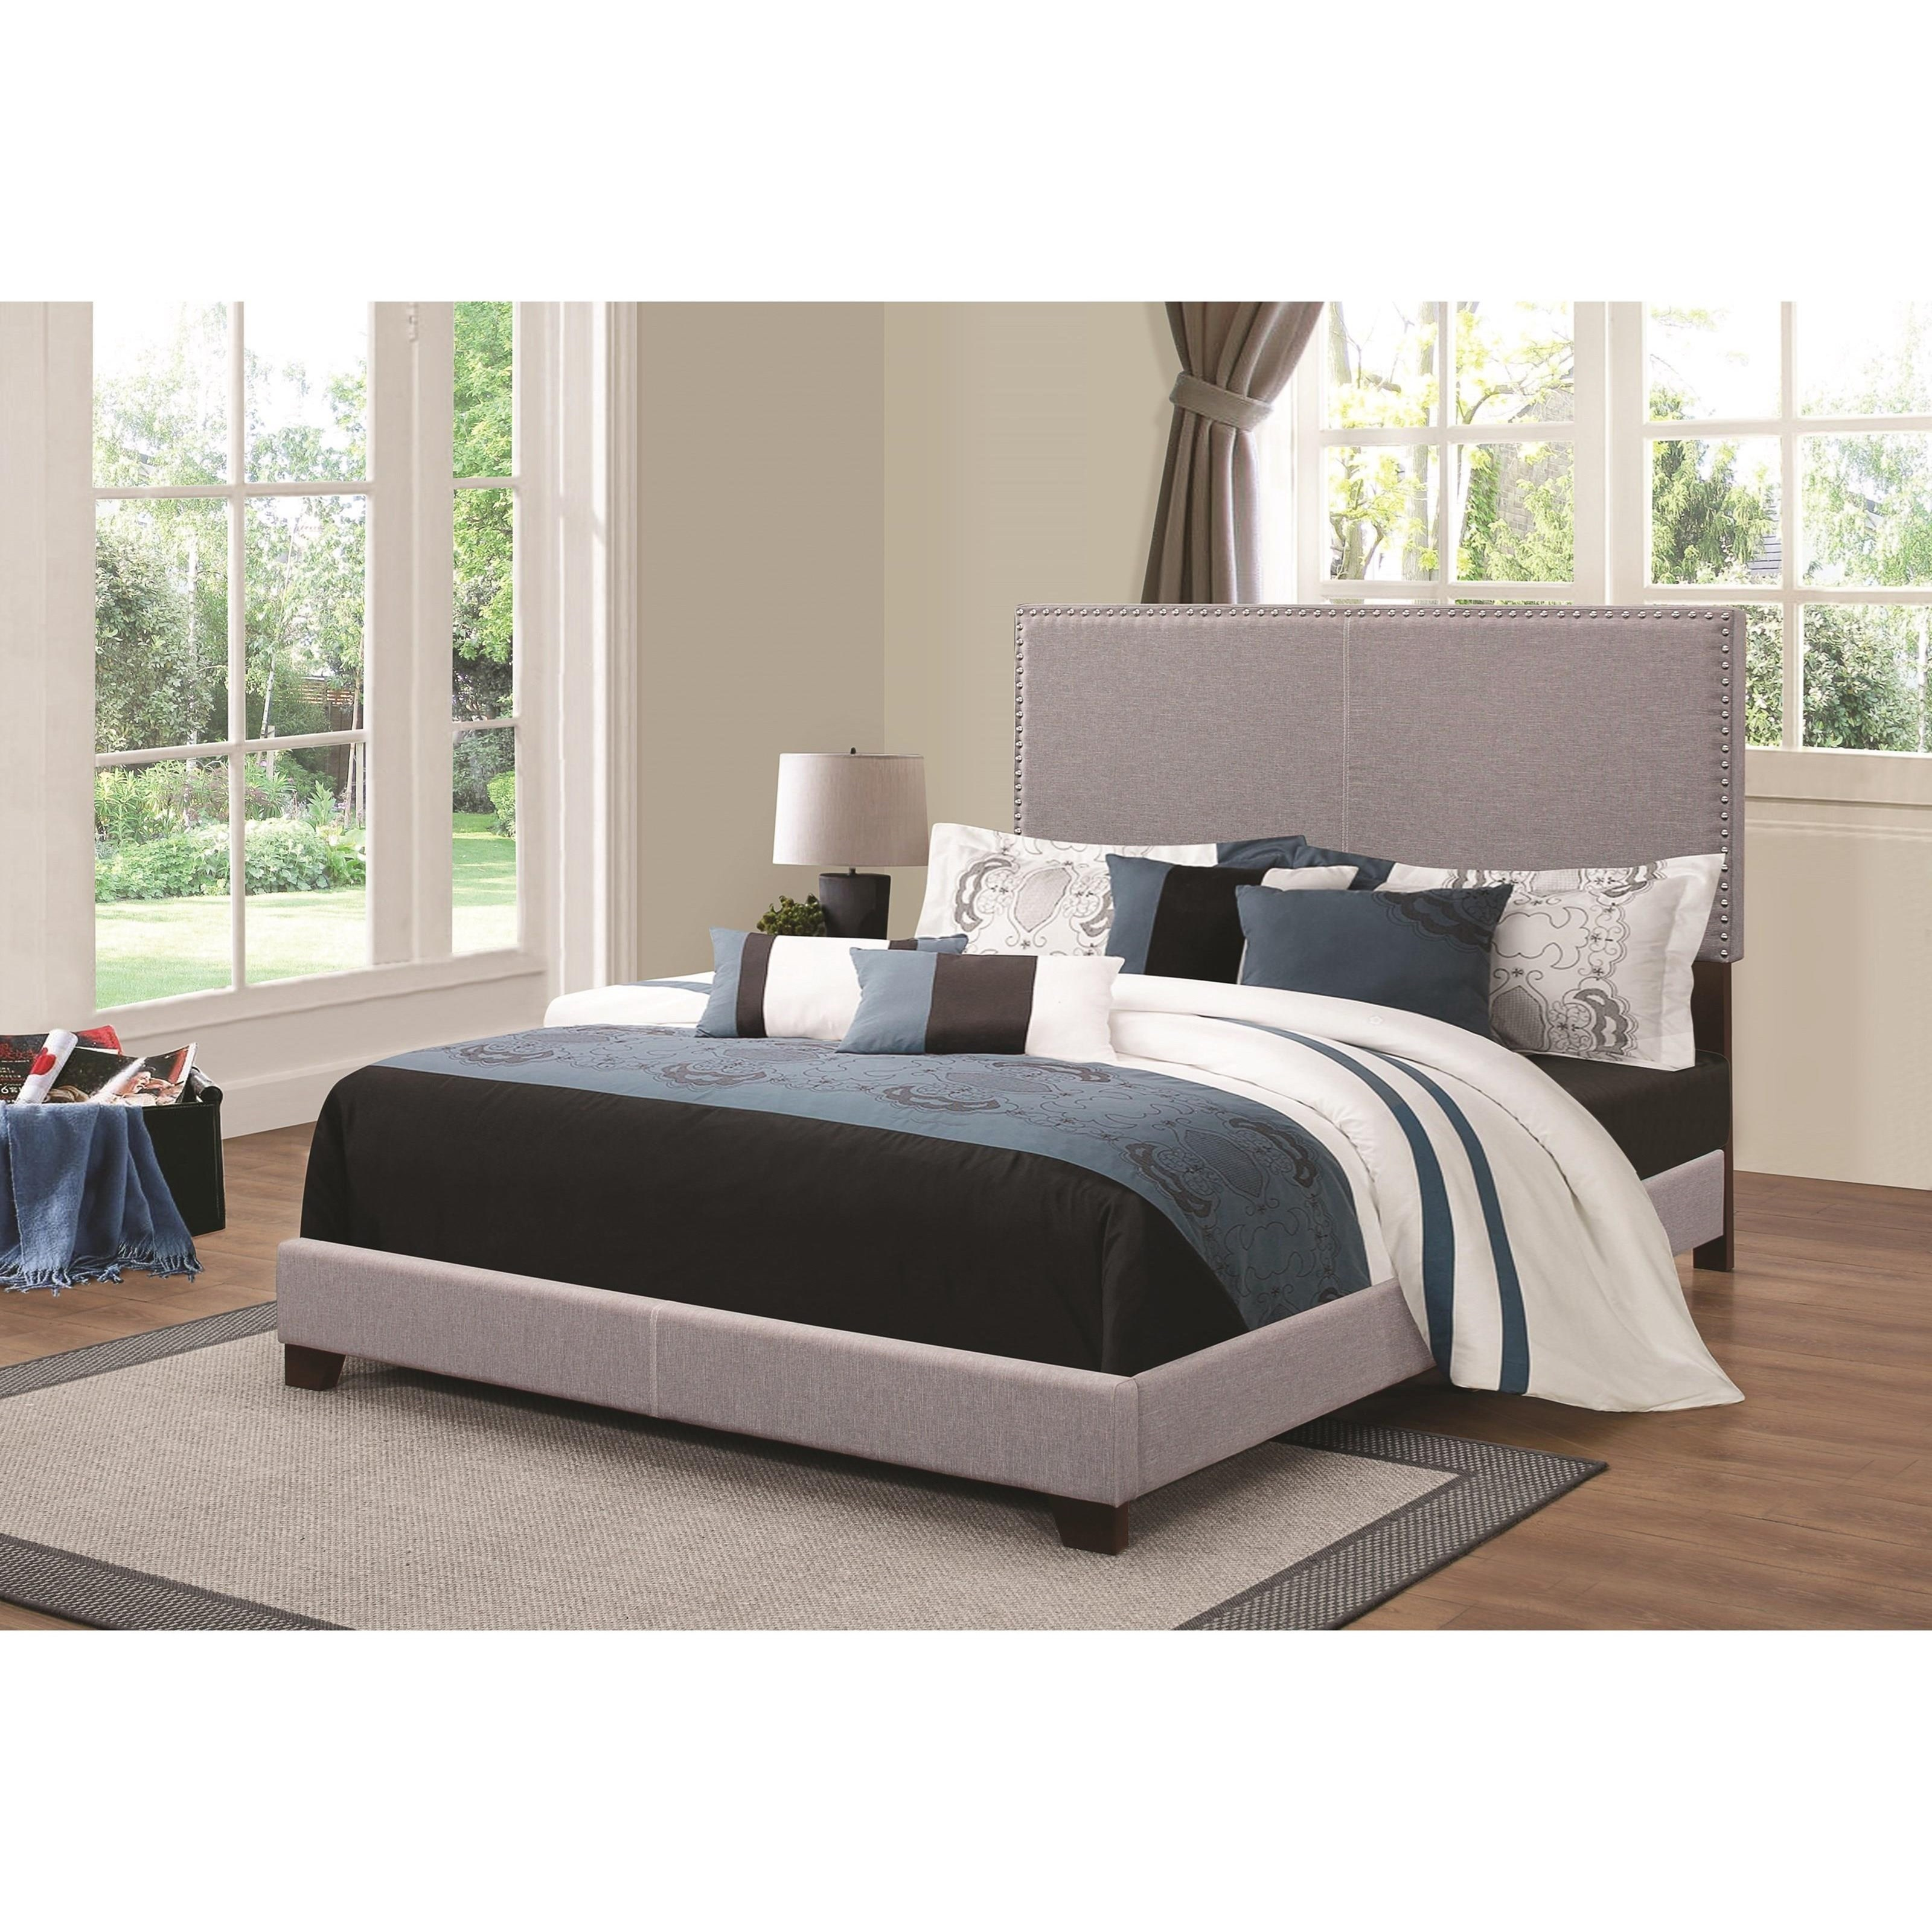 Upholstered Beds King Bed by Coaster at Northeast Factory Direct